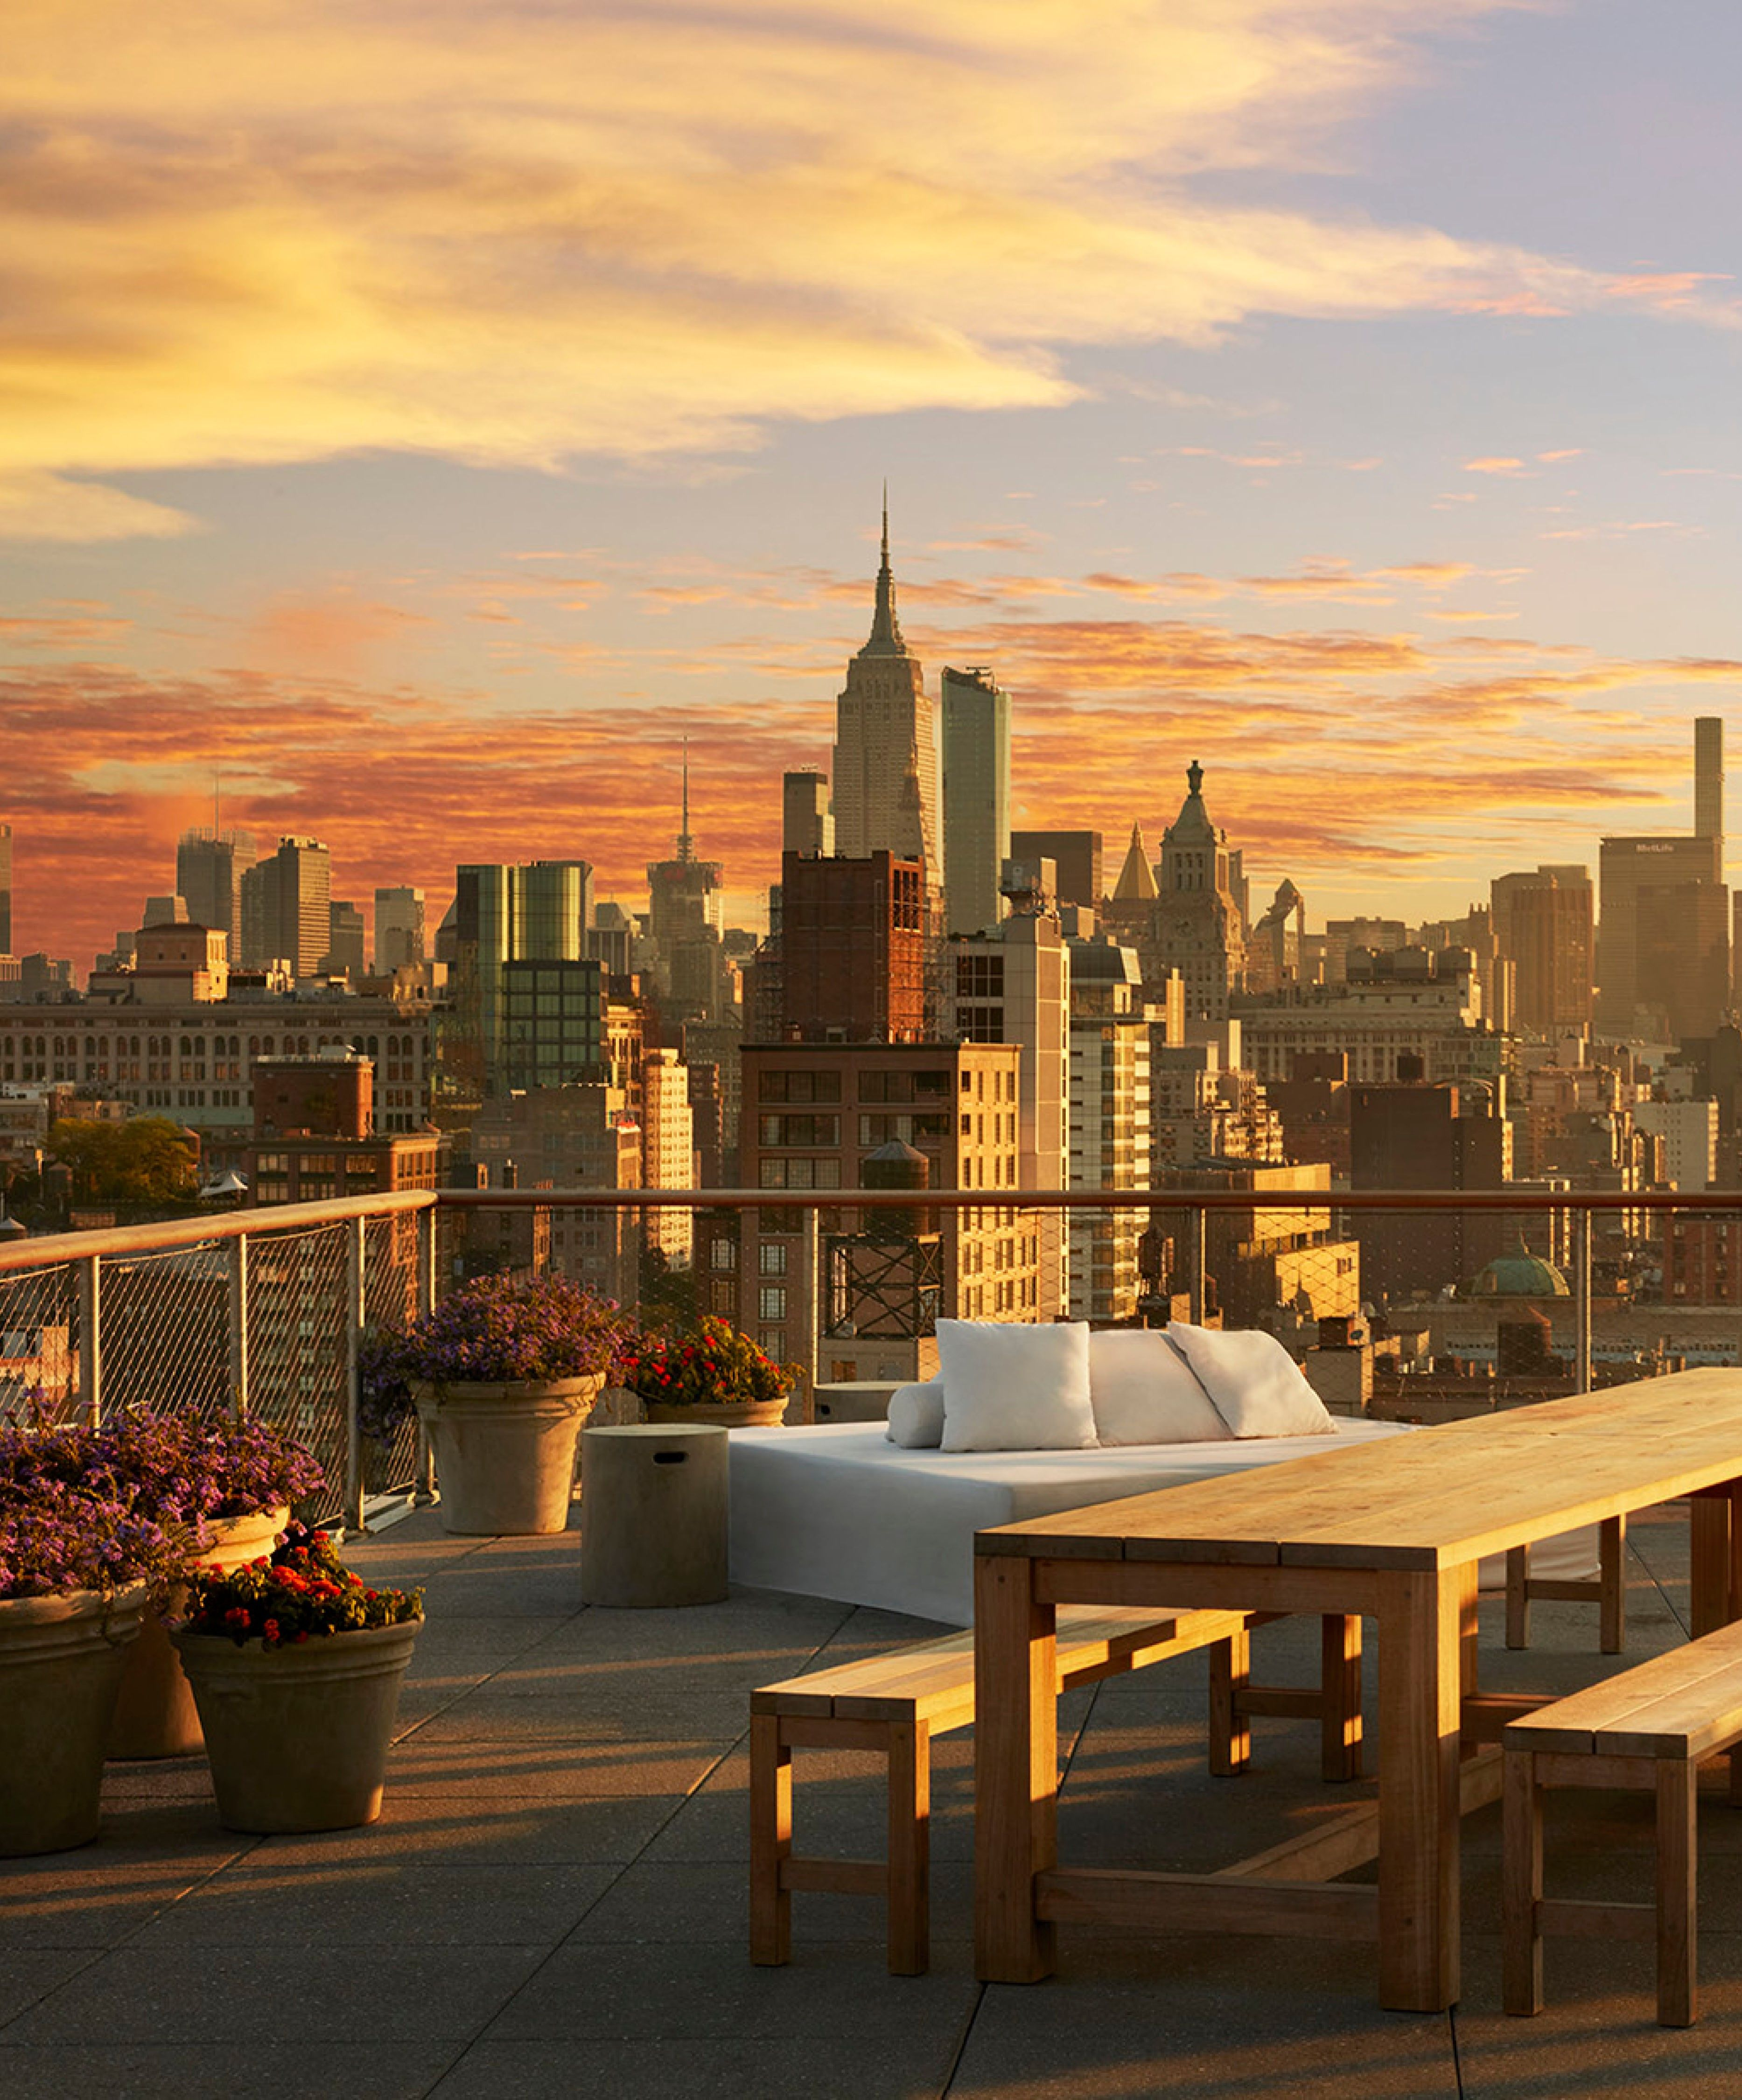 PUBLIC HOTEL - NYC | Travel ideas in 2019 | Rooftop bars nyc, Nyc